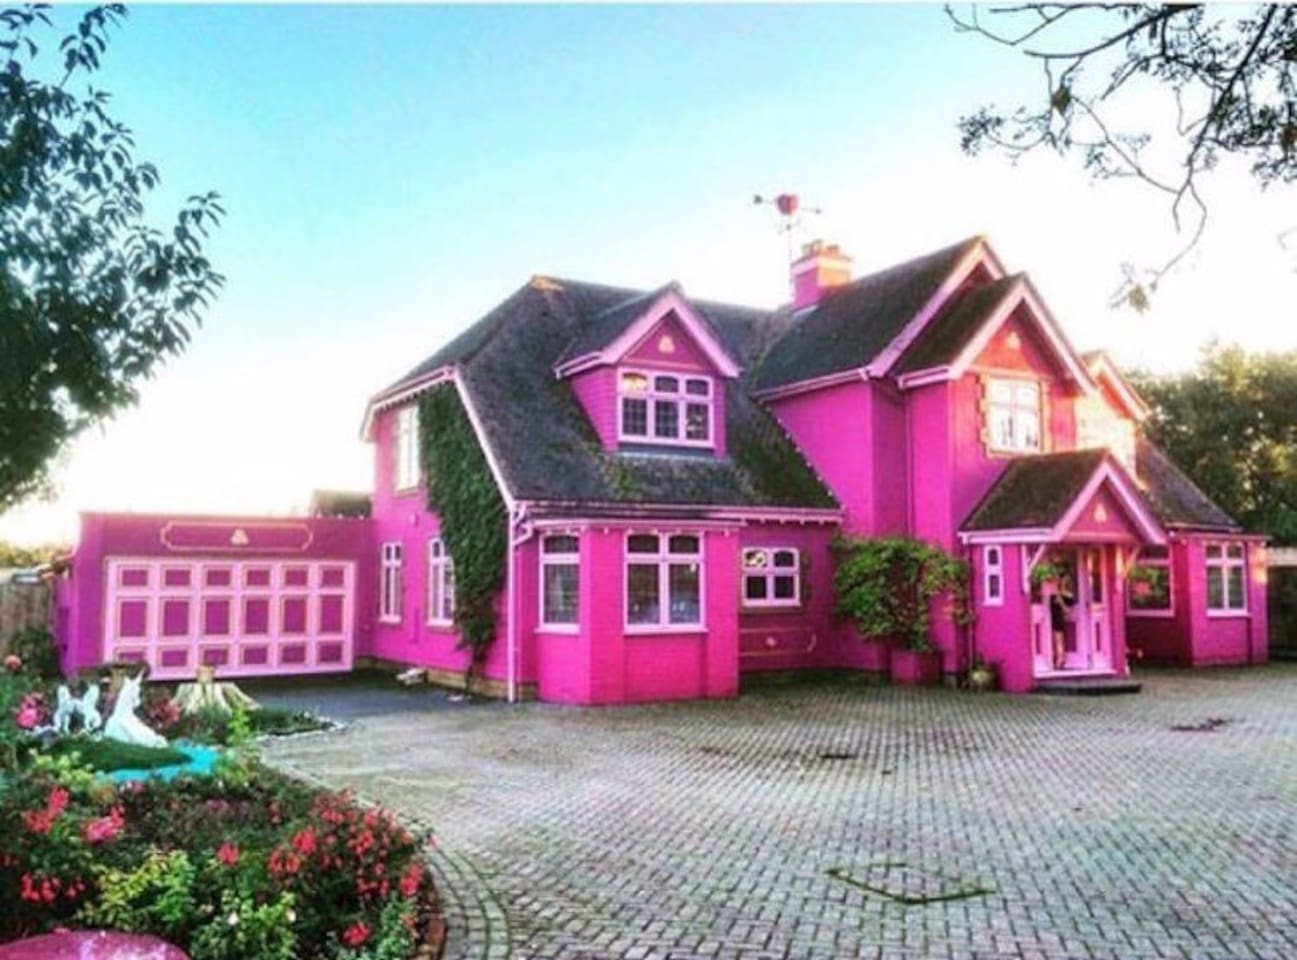 This pink house in Essex can be booked through Airbnb. Image: Eaton House Studio